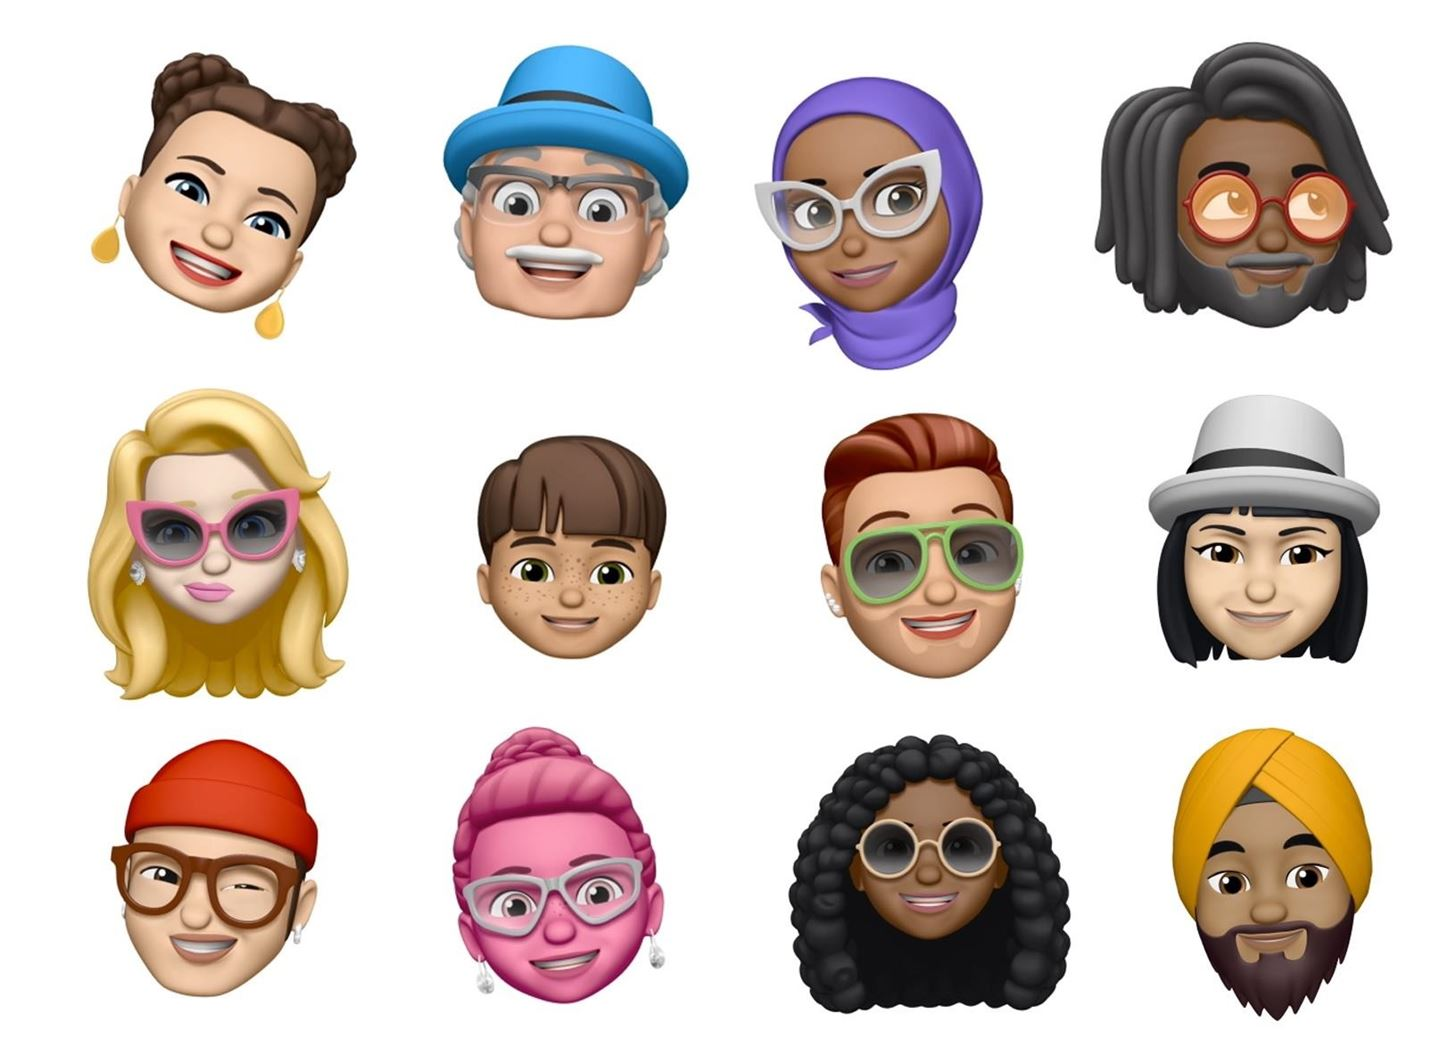 84 cool new iOS 12 features you do not know